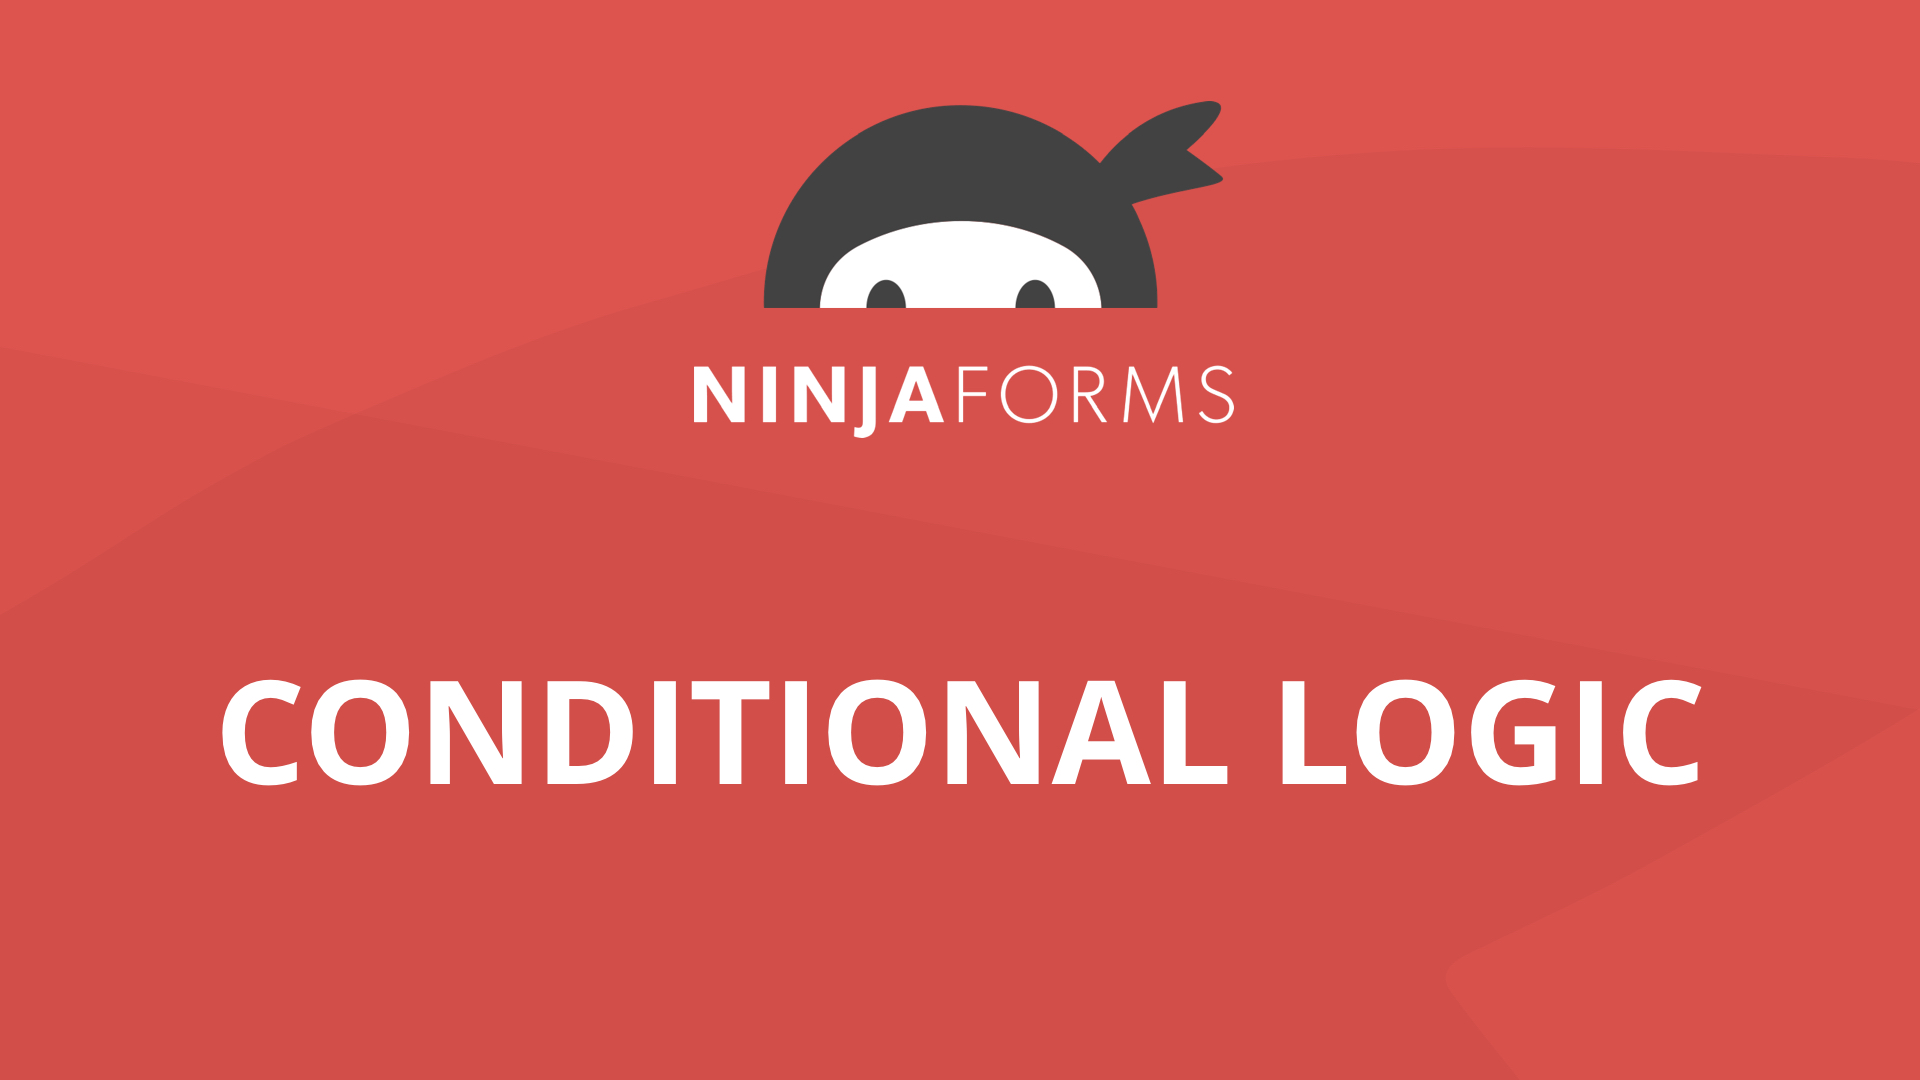 Conditional Logic in Ninja Forms by WP101®